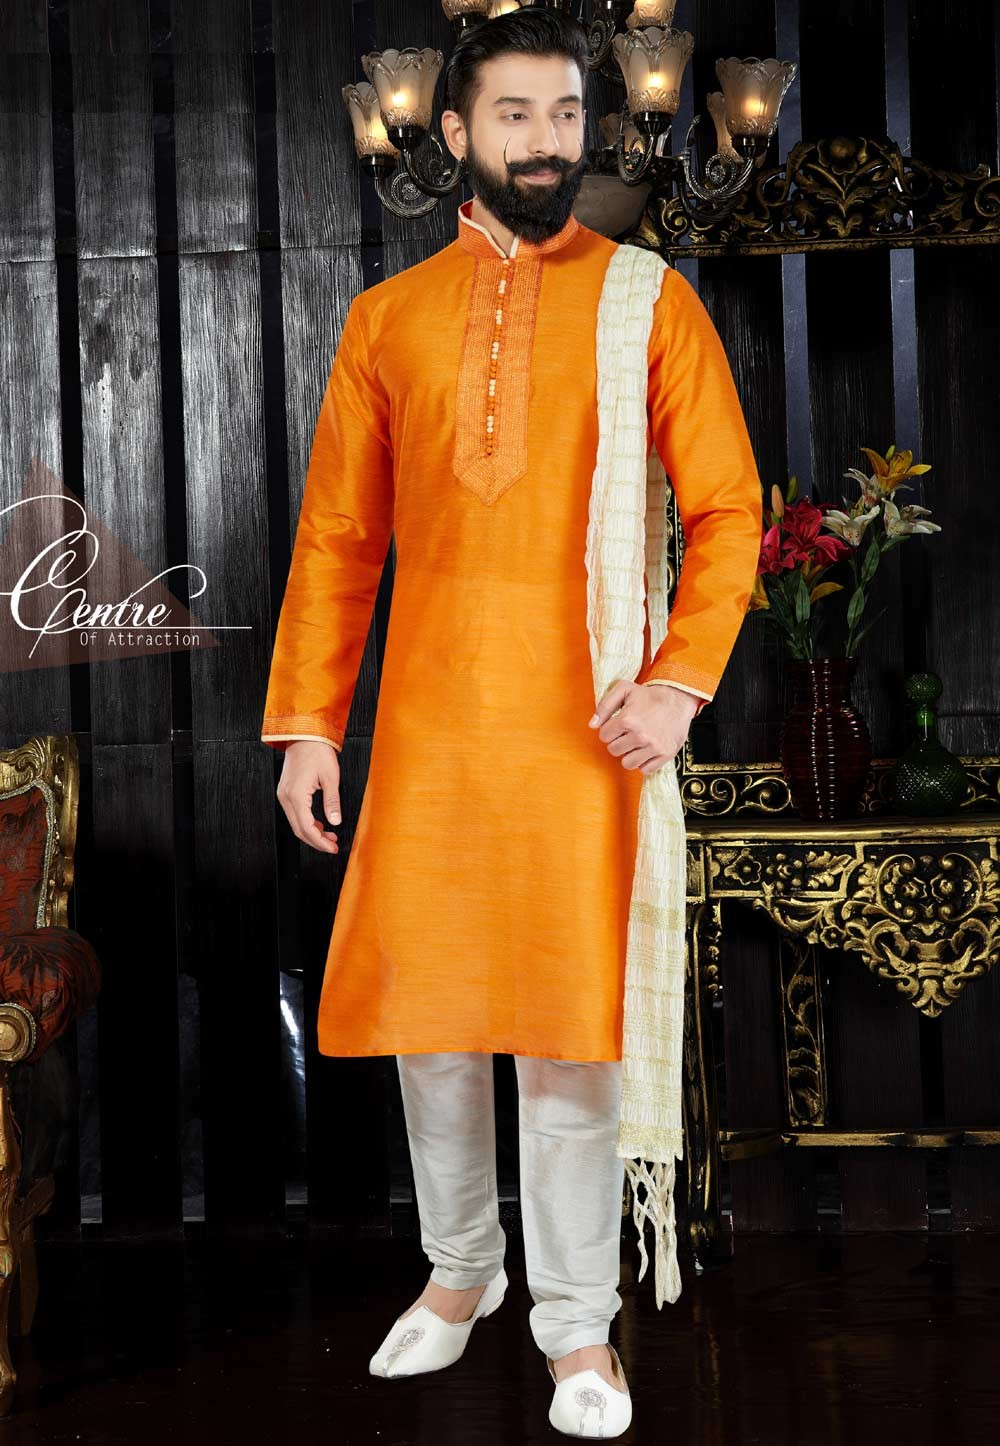 Exquisite Chinese Collar Men's Dupion Art Silk with Thread Orange Readymade Kurta